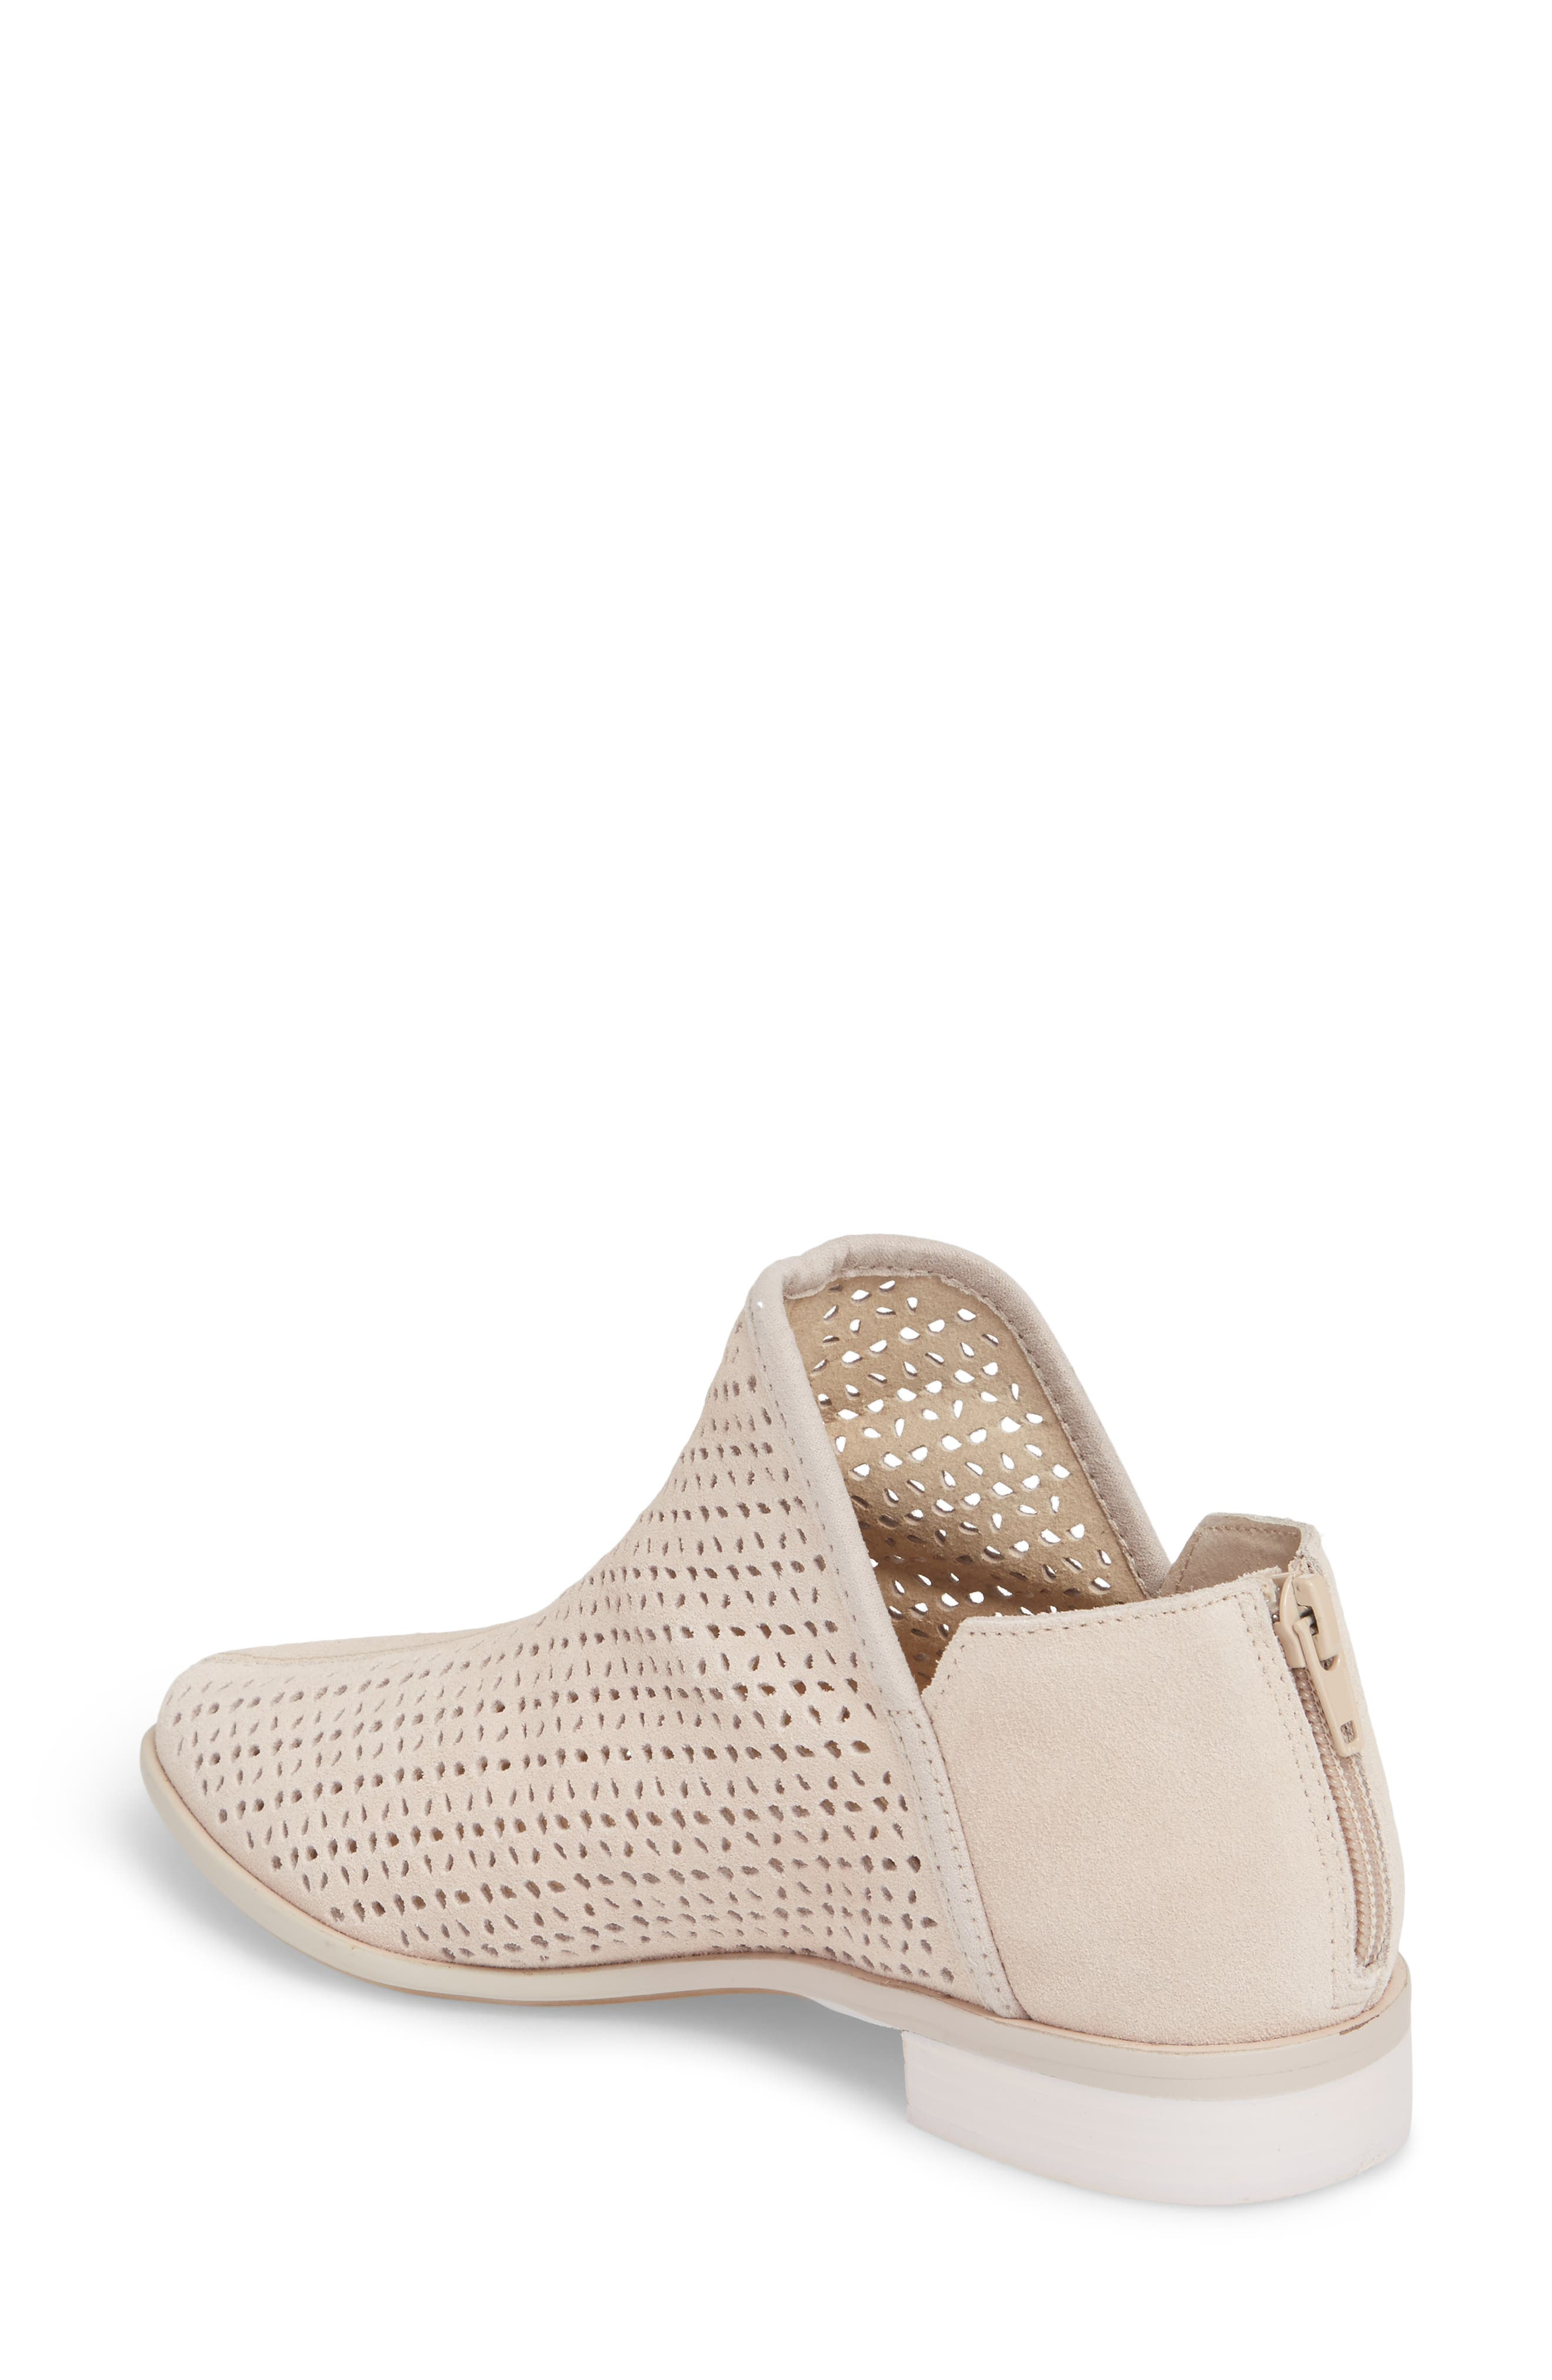 Alley Perforated Bootie,                             Alternate thumbnail 2, color,                             Wheat